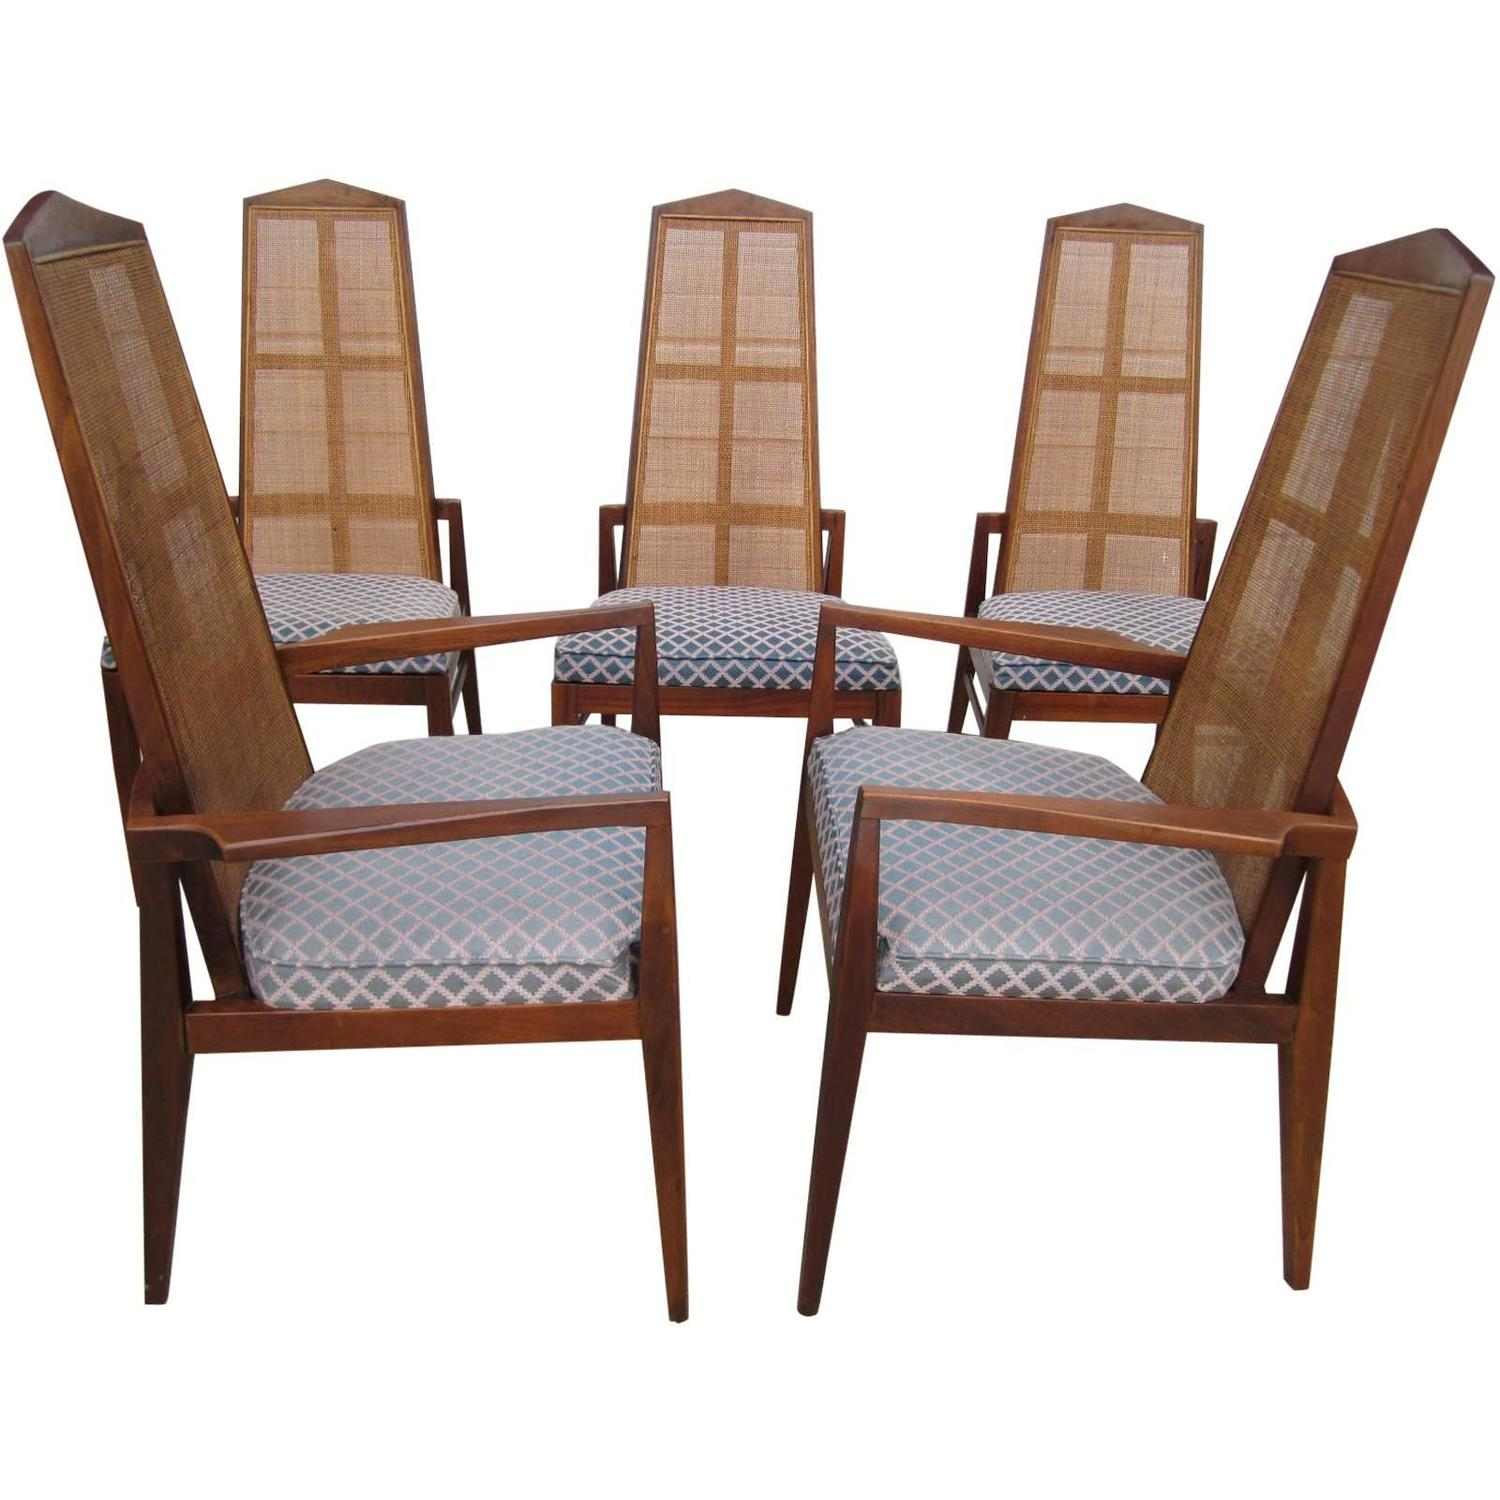 Cane Dining Chairs 5 Walnut Foster And Mcdavid Cane Back Dining Chairs Mid